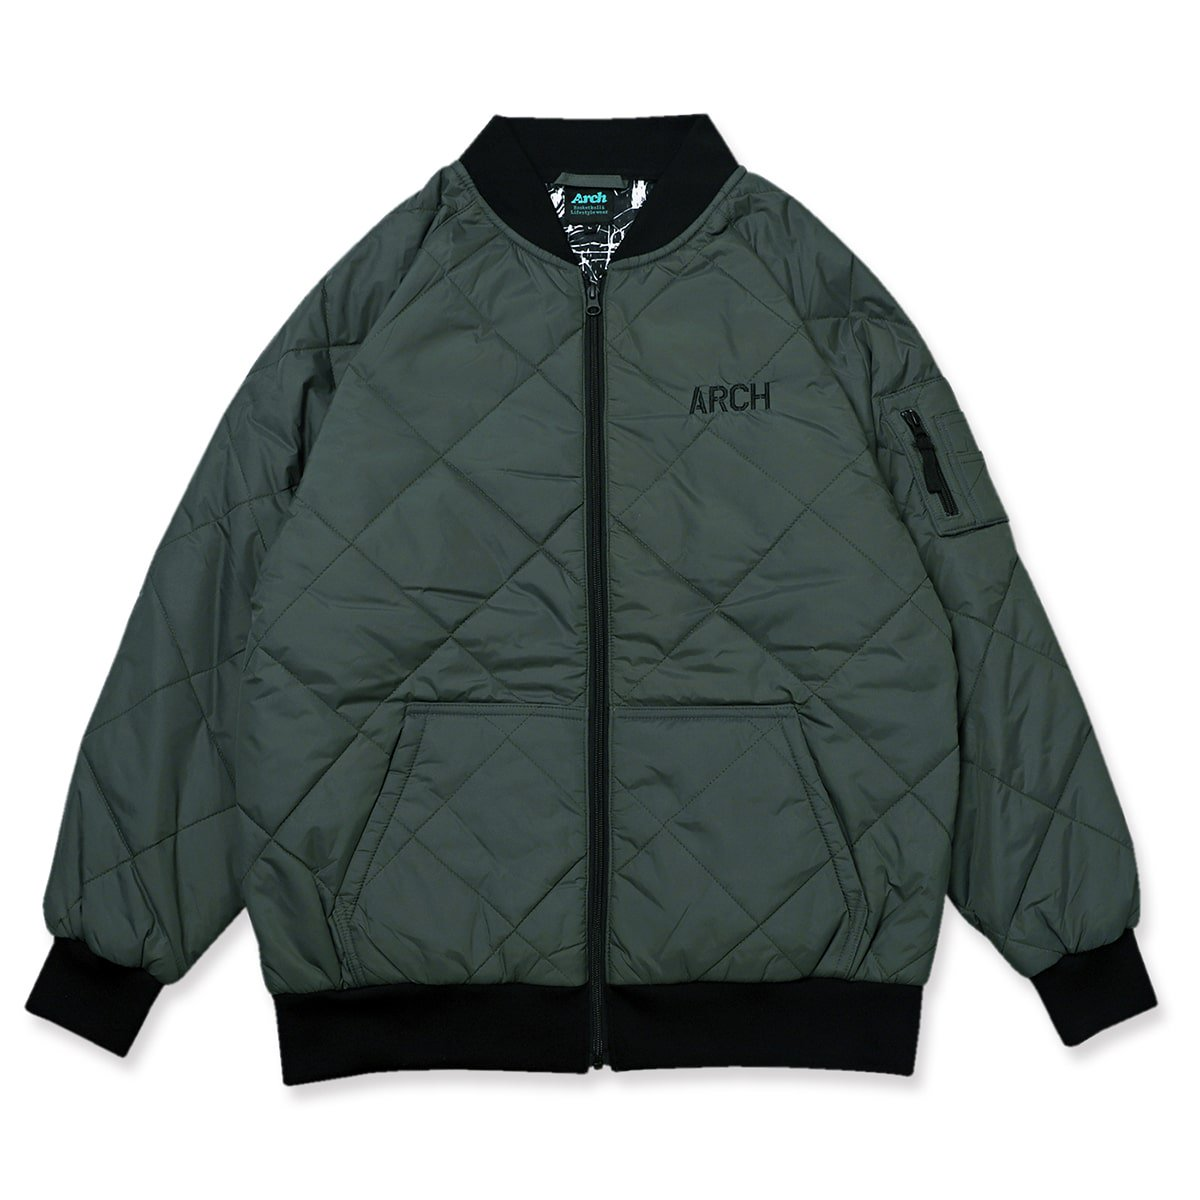 stencil flight jacket【green】